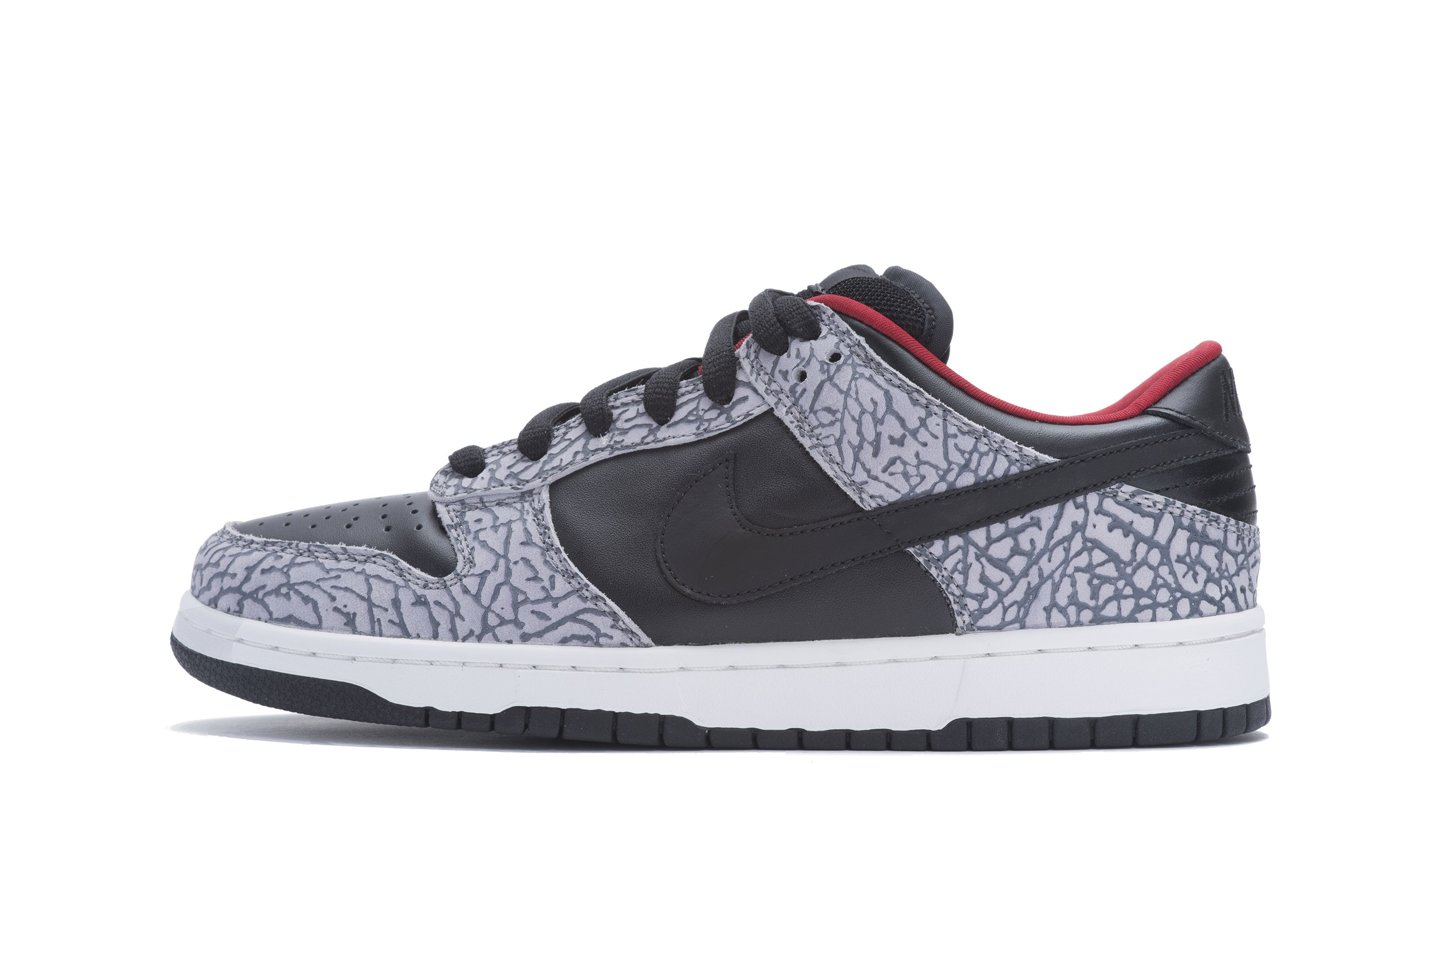 Nike SB elephant supreme dunks black cement 2002